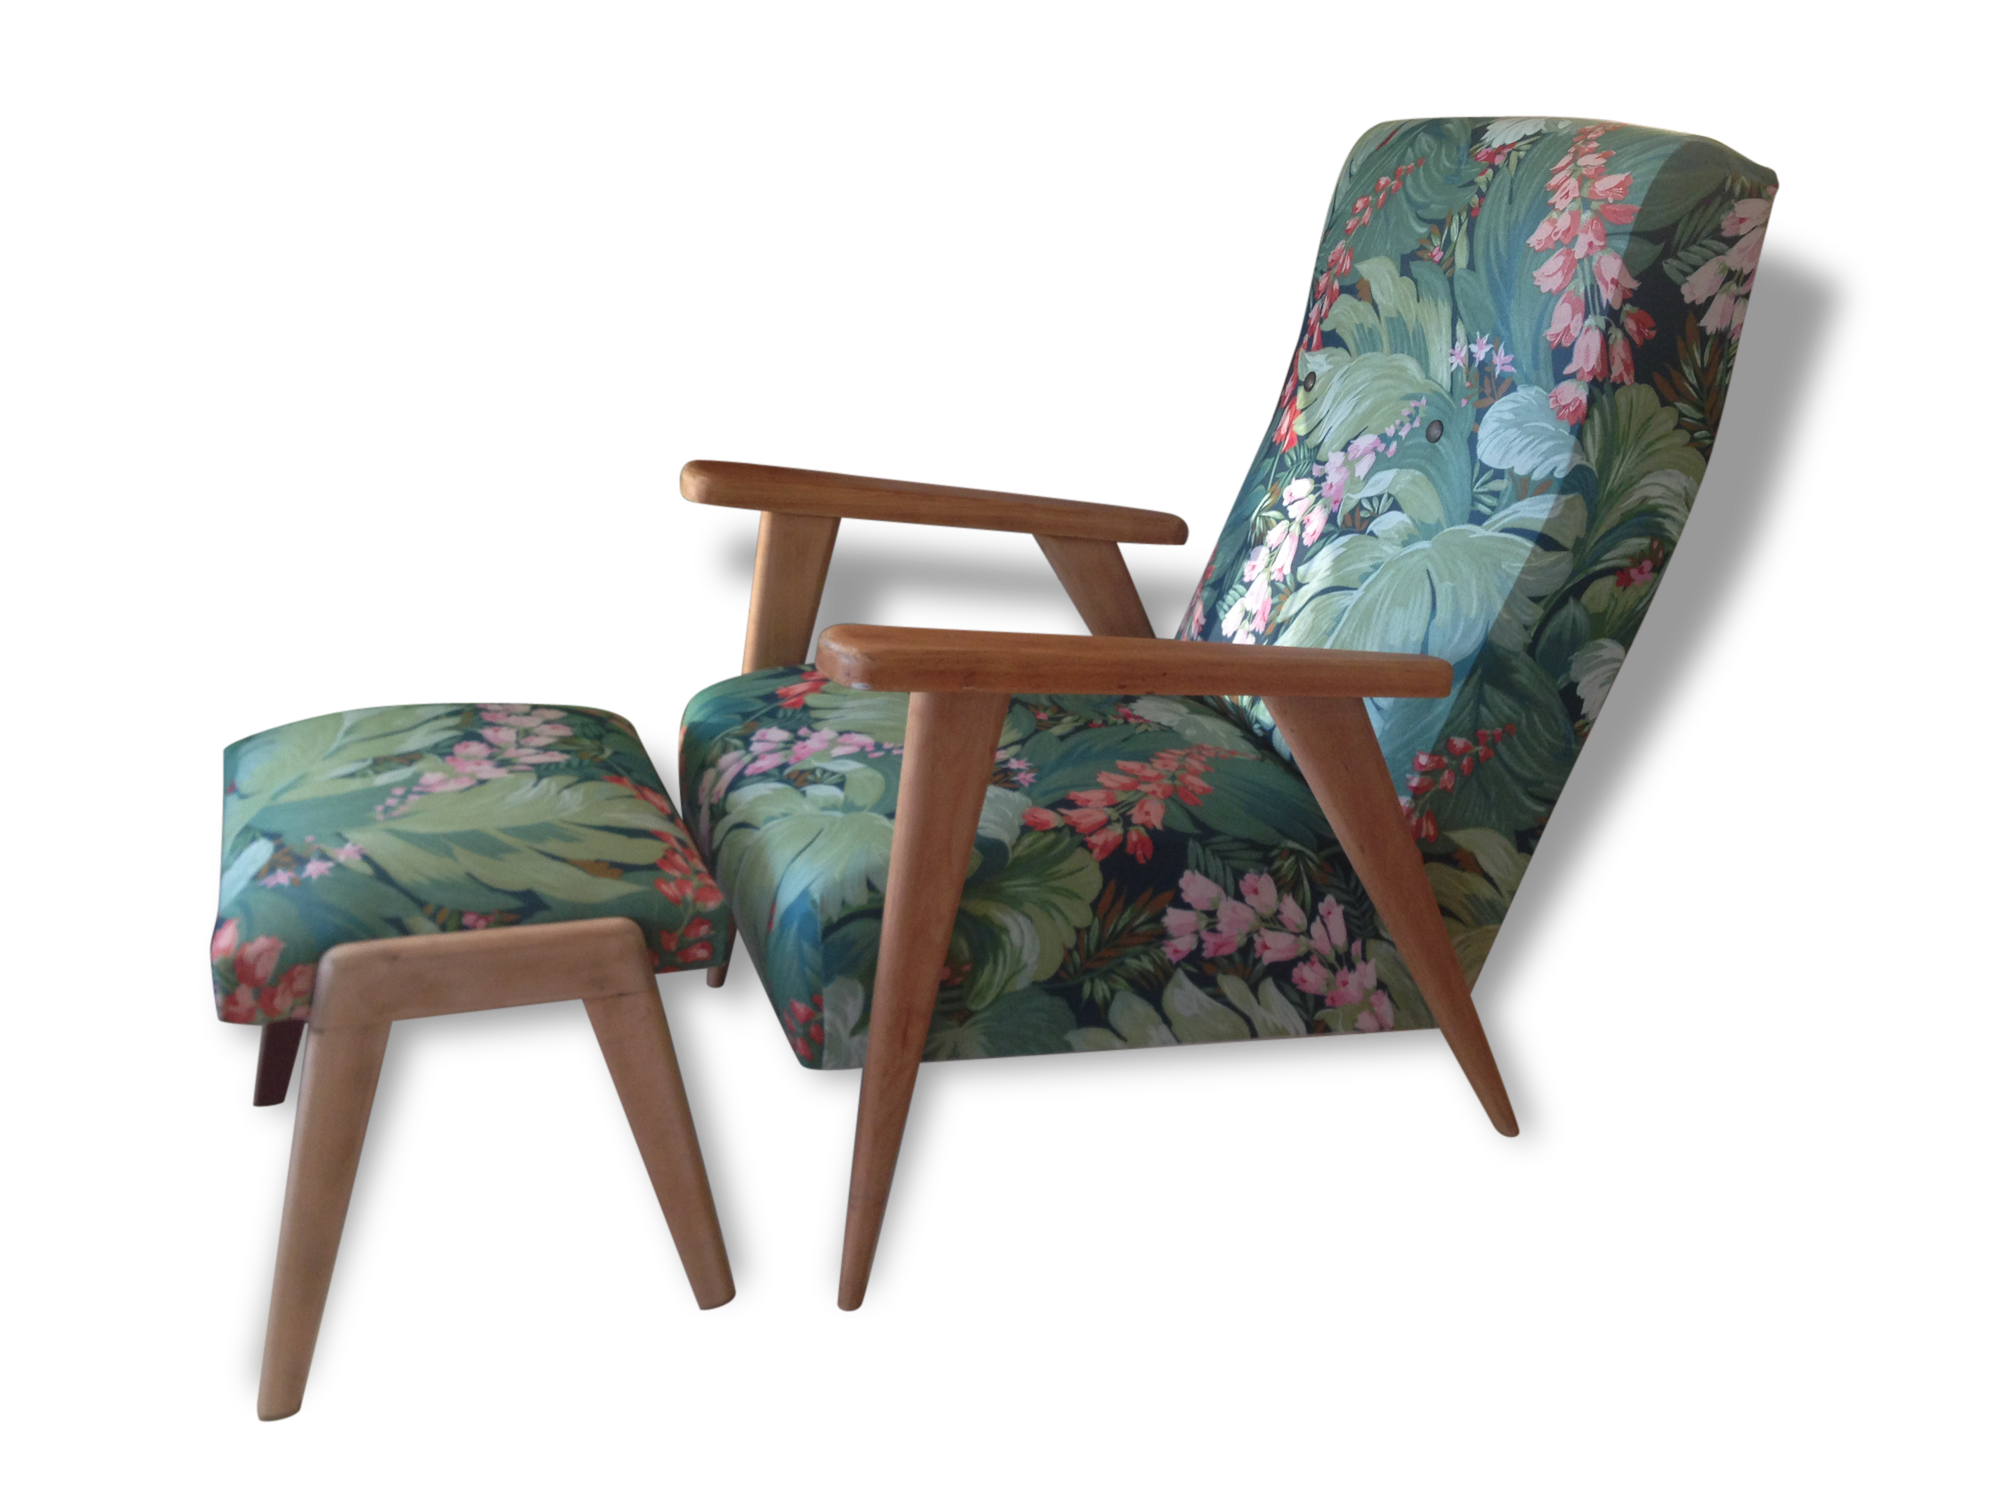 coussin chaise longue en anglais with Fauteuil Exotique on 435 Coussin Foxy furthermore S together with F 120060507 Spl14108 moreover Transat Jardin 43 Idees Pour Un Bain De Soleil Ca Vous Dit furthermore Sofa Rose 1940.